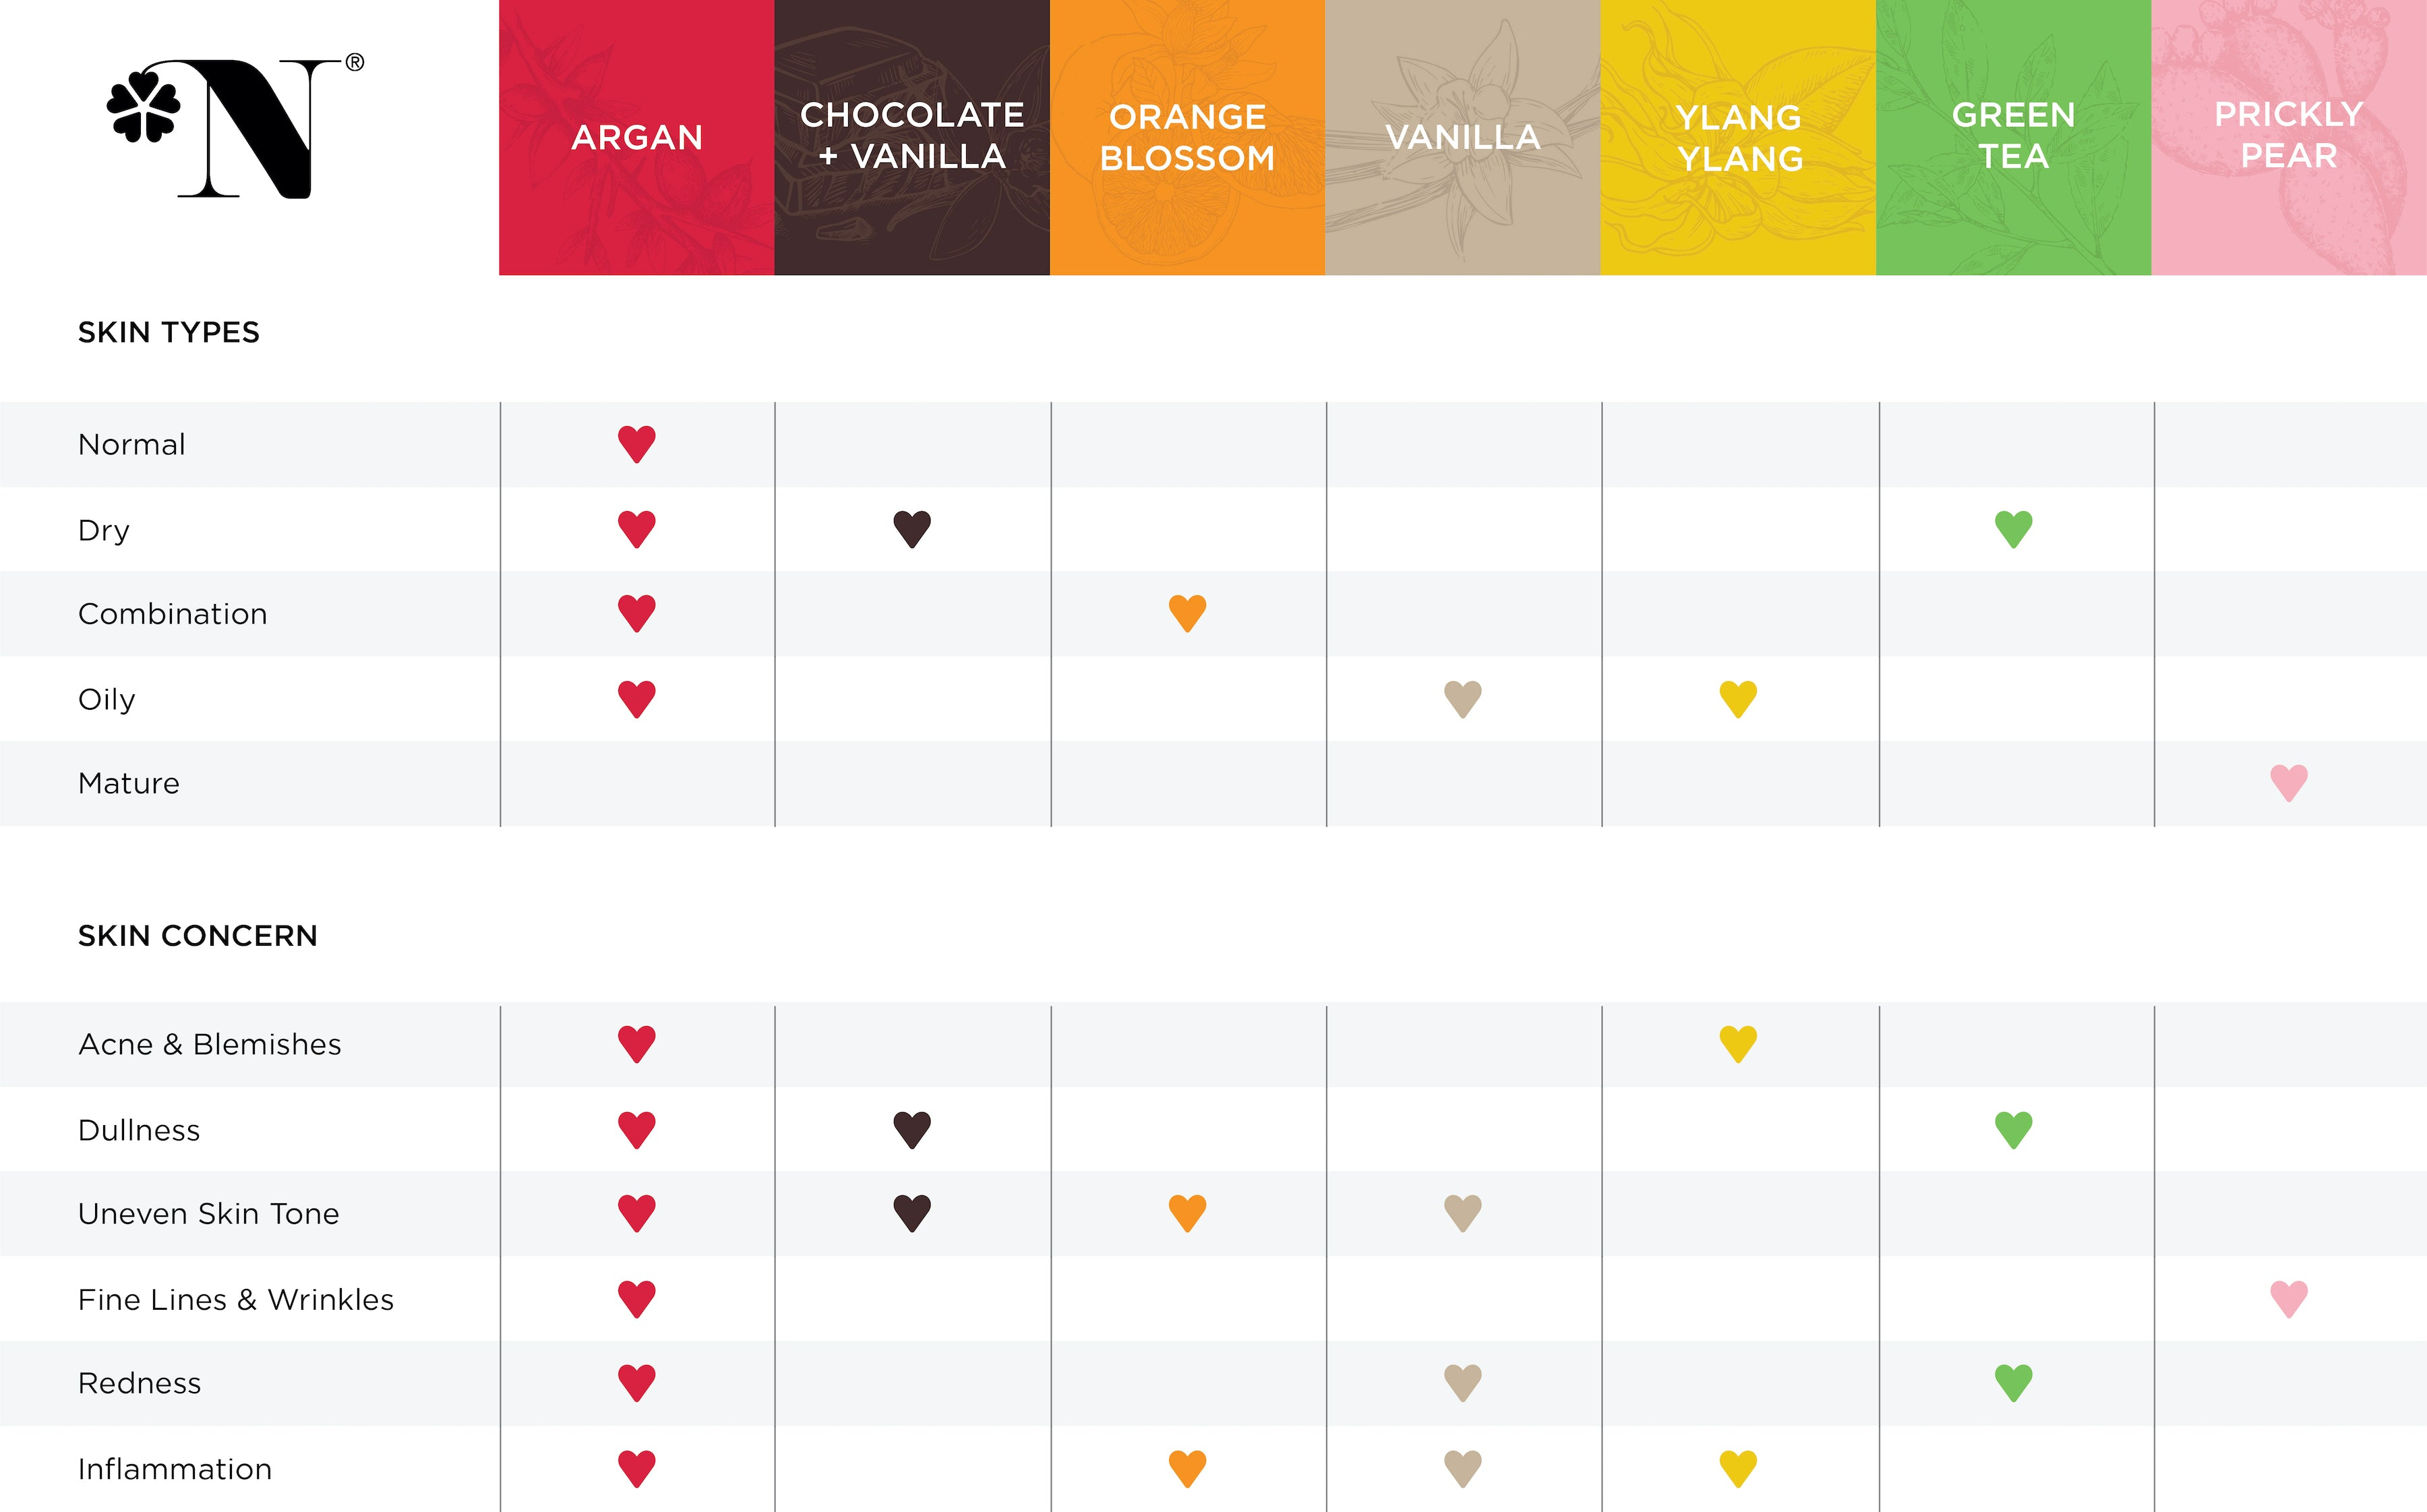 beauty nut argan oil comparaison chart | what's your skin type?